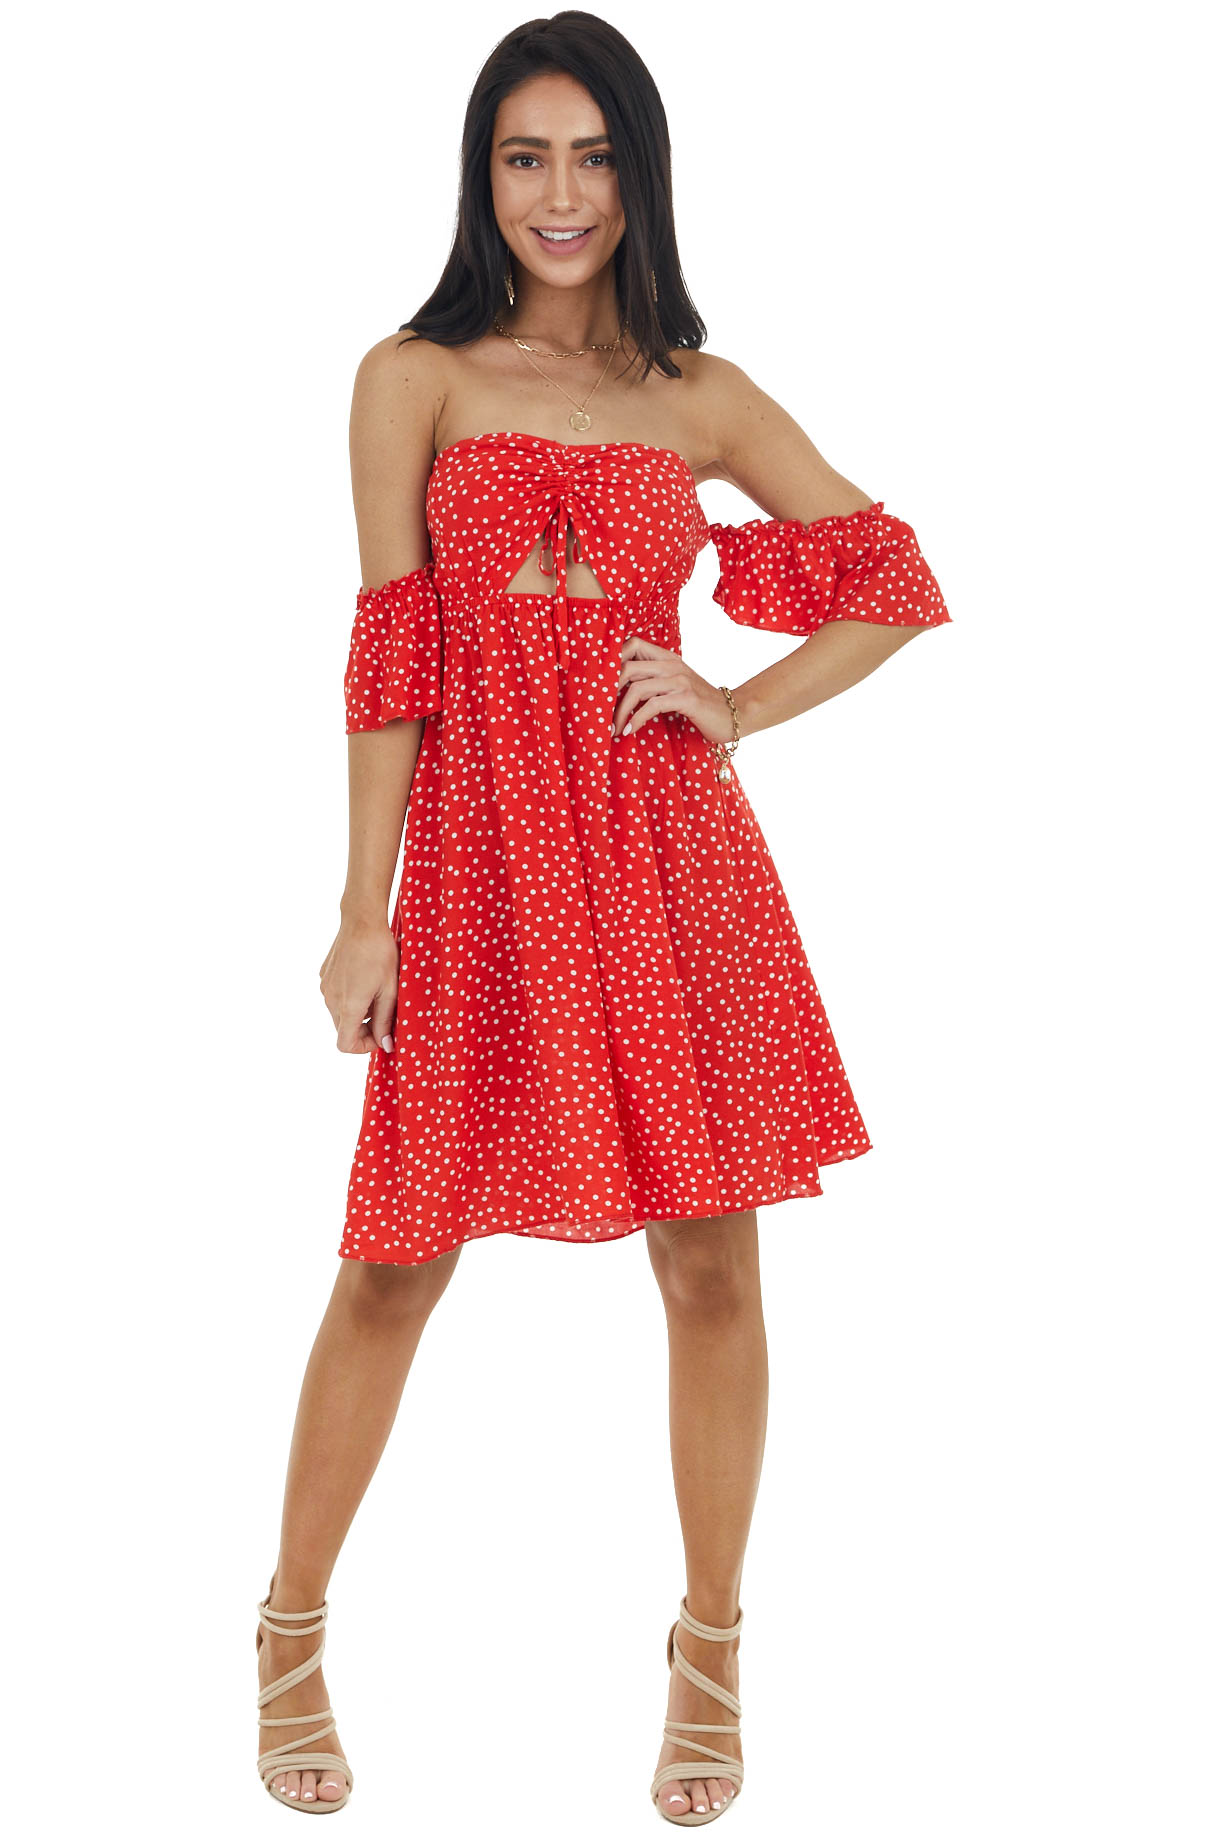 Lipstick Red Polka Dot Off the Shoulder Dress with Ruching